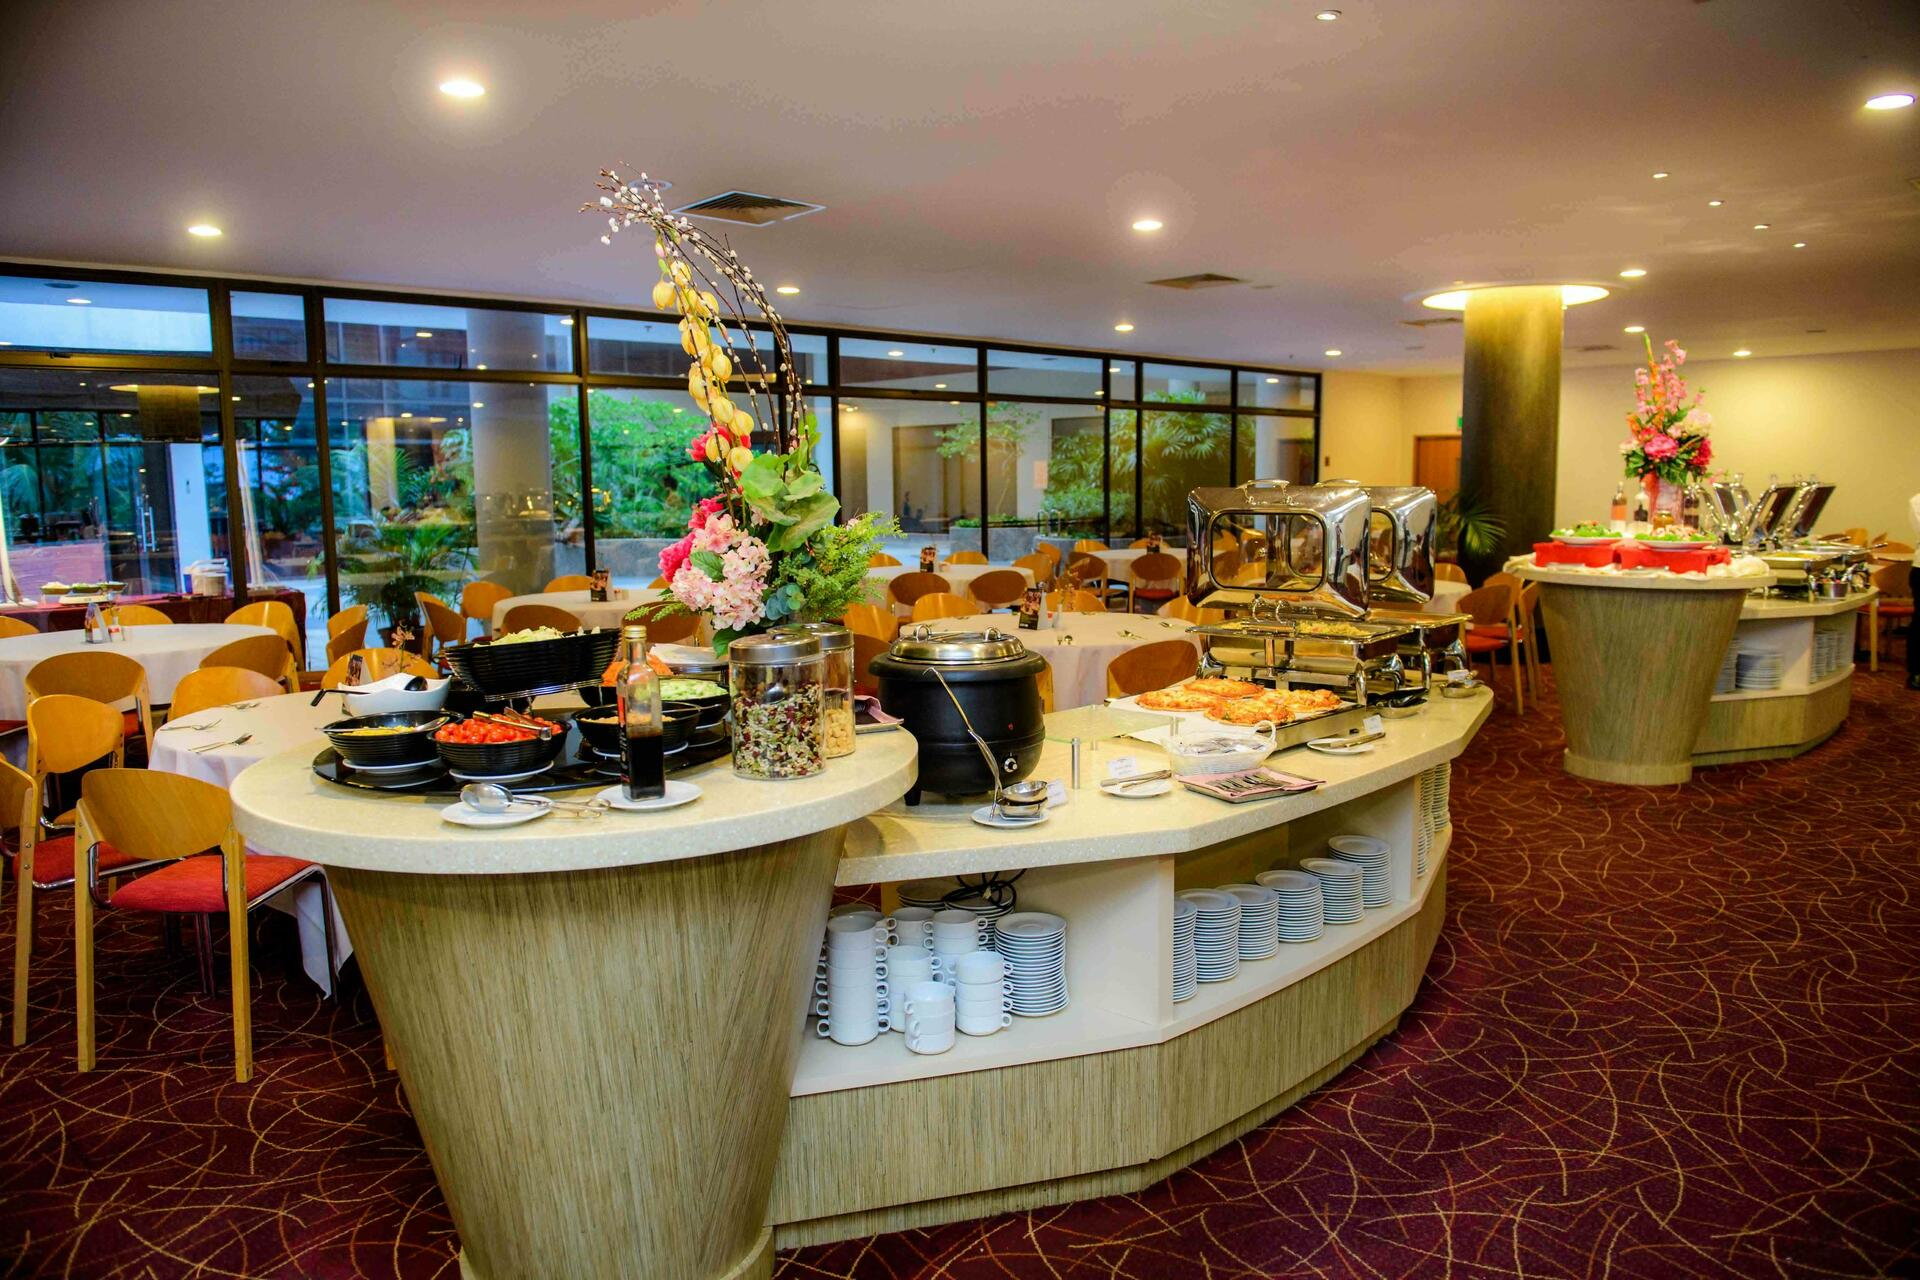 YWCA Fort Canning Lodge Cafe Lodge Buffet